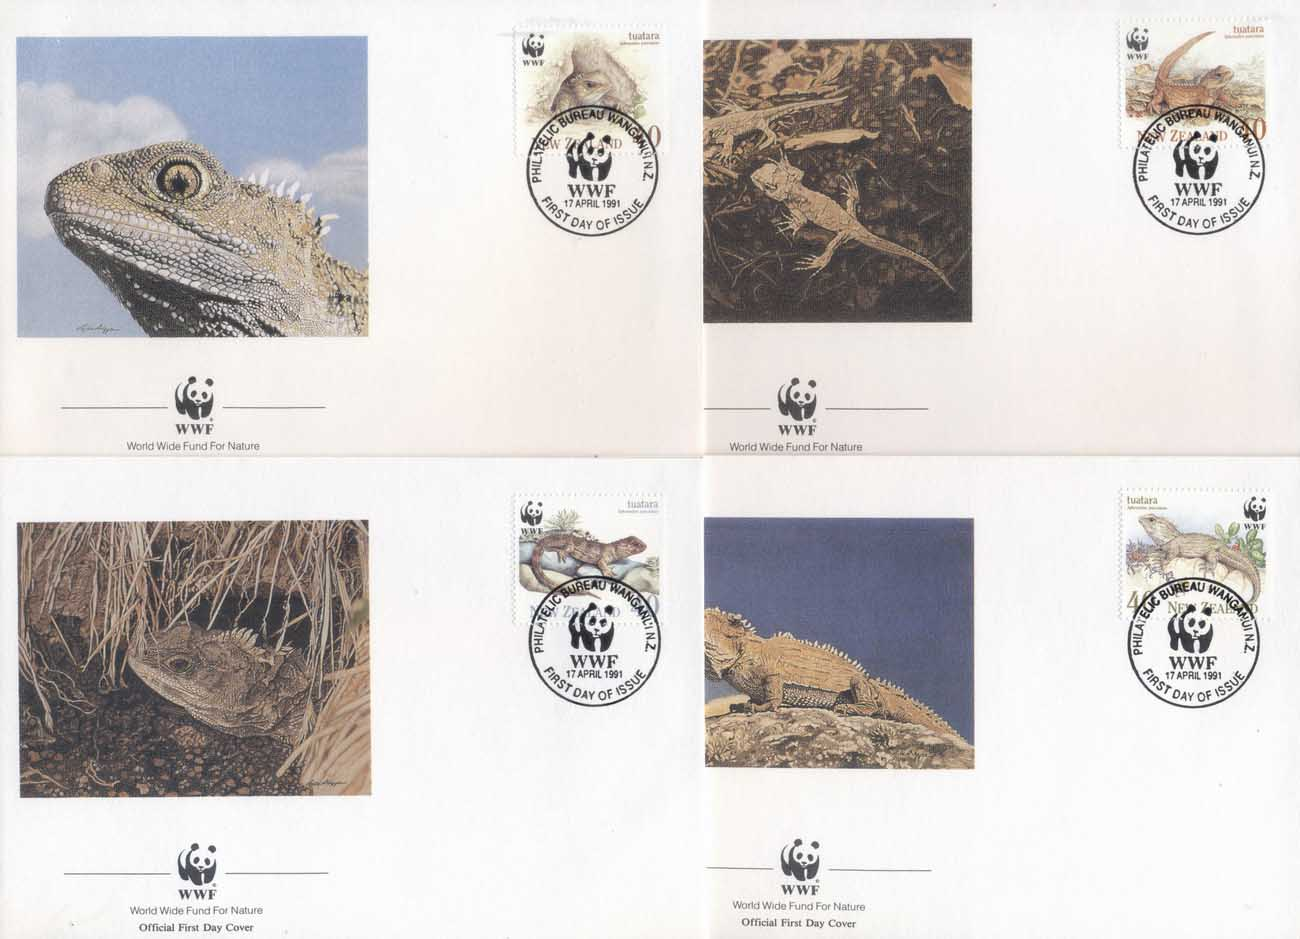 New Zealand 1991 WWF Tuatara, Reptile FDC